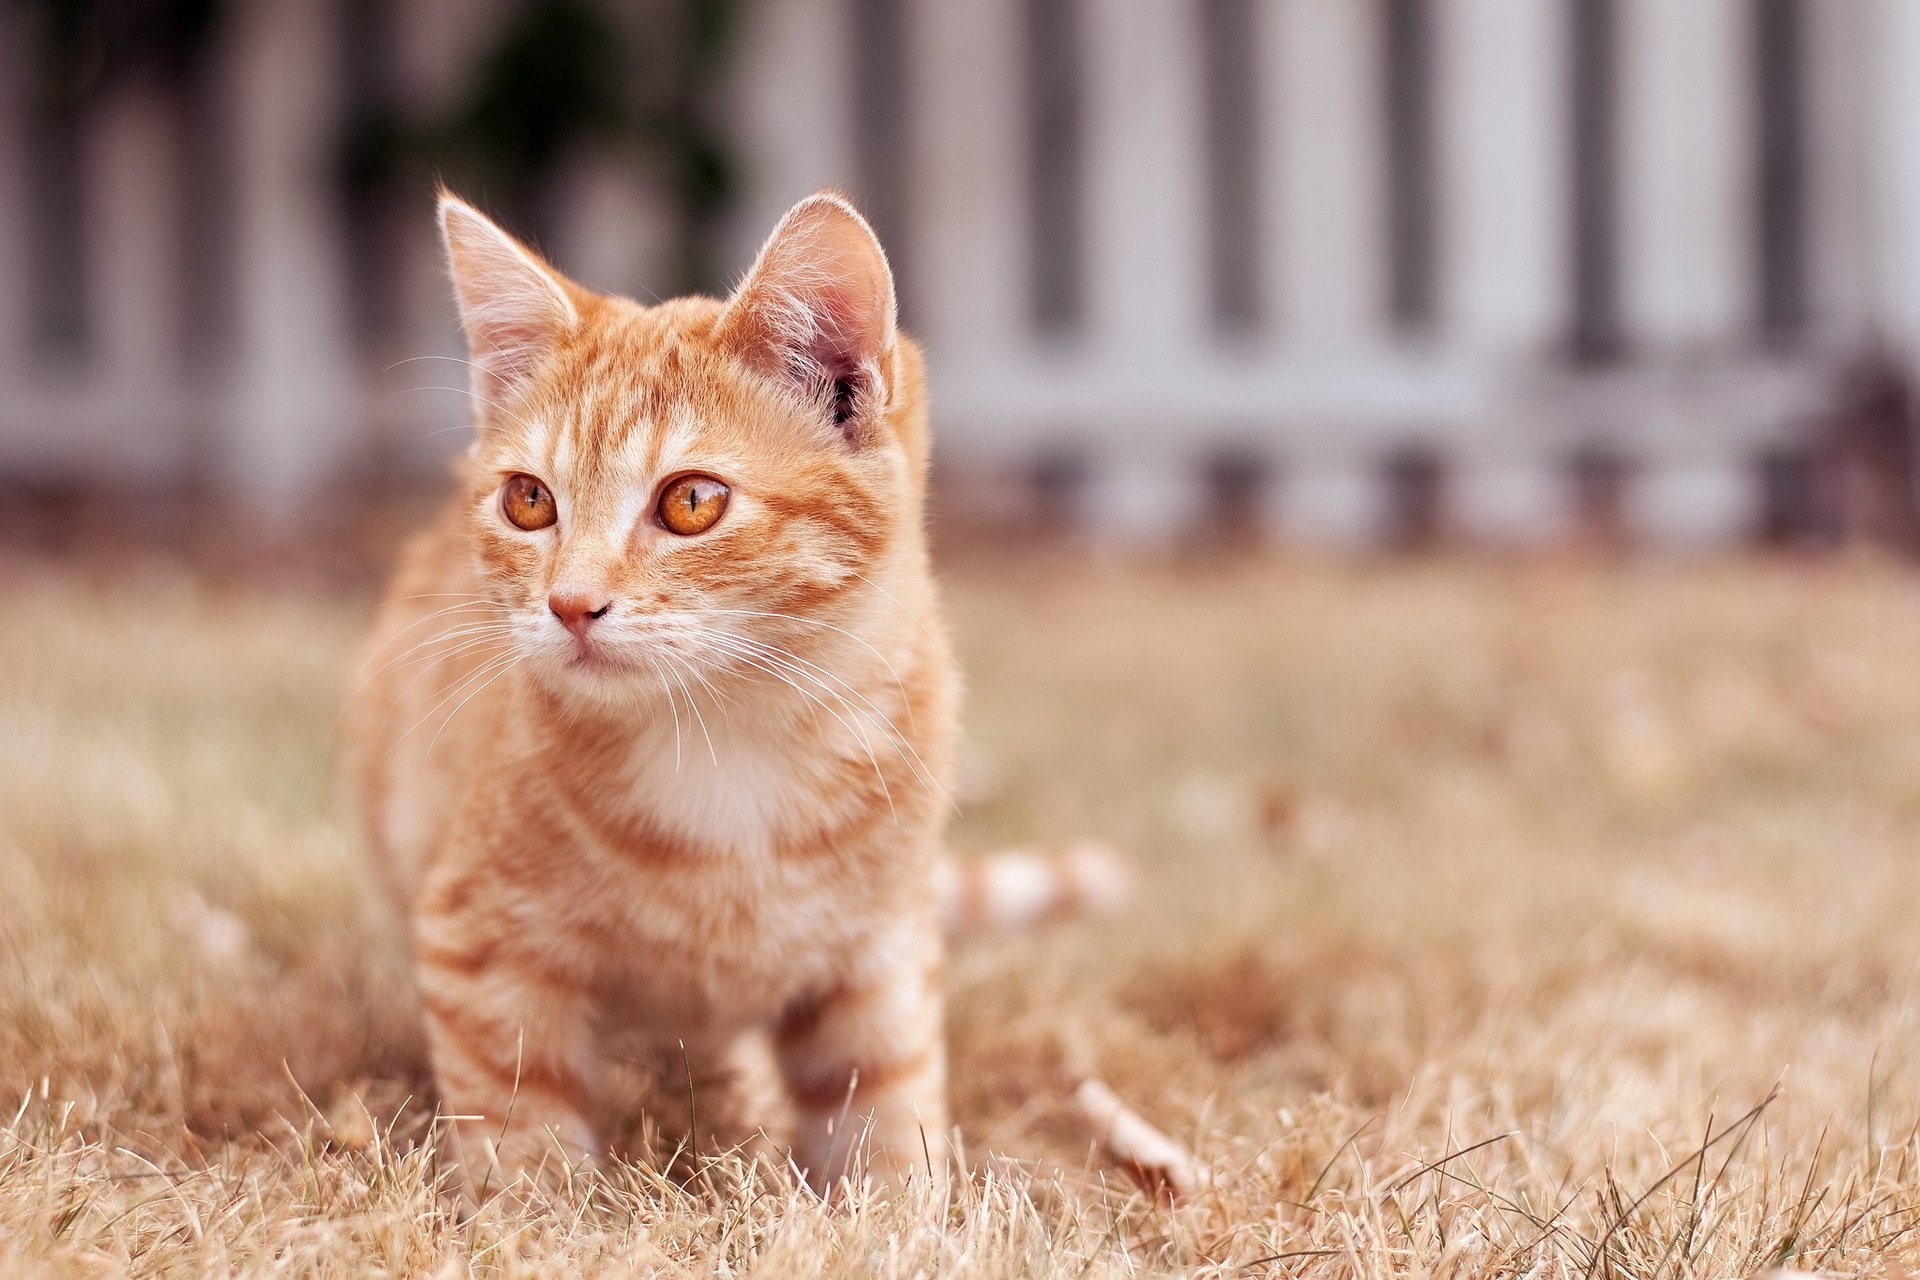 133512 download wallpaper Animals, Kitty, Kitten, Cat, Muzzle, Sight, Opinion screensavers and pictures for free